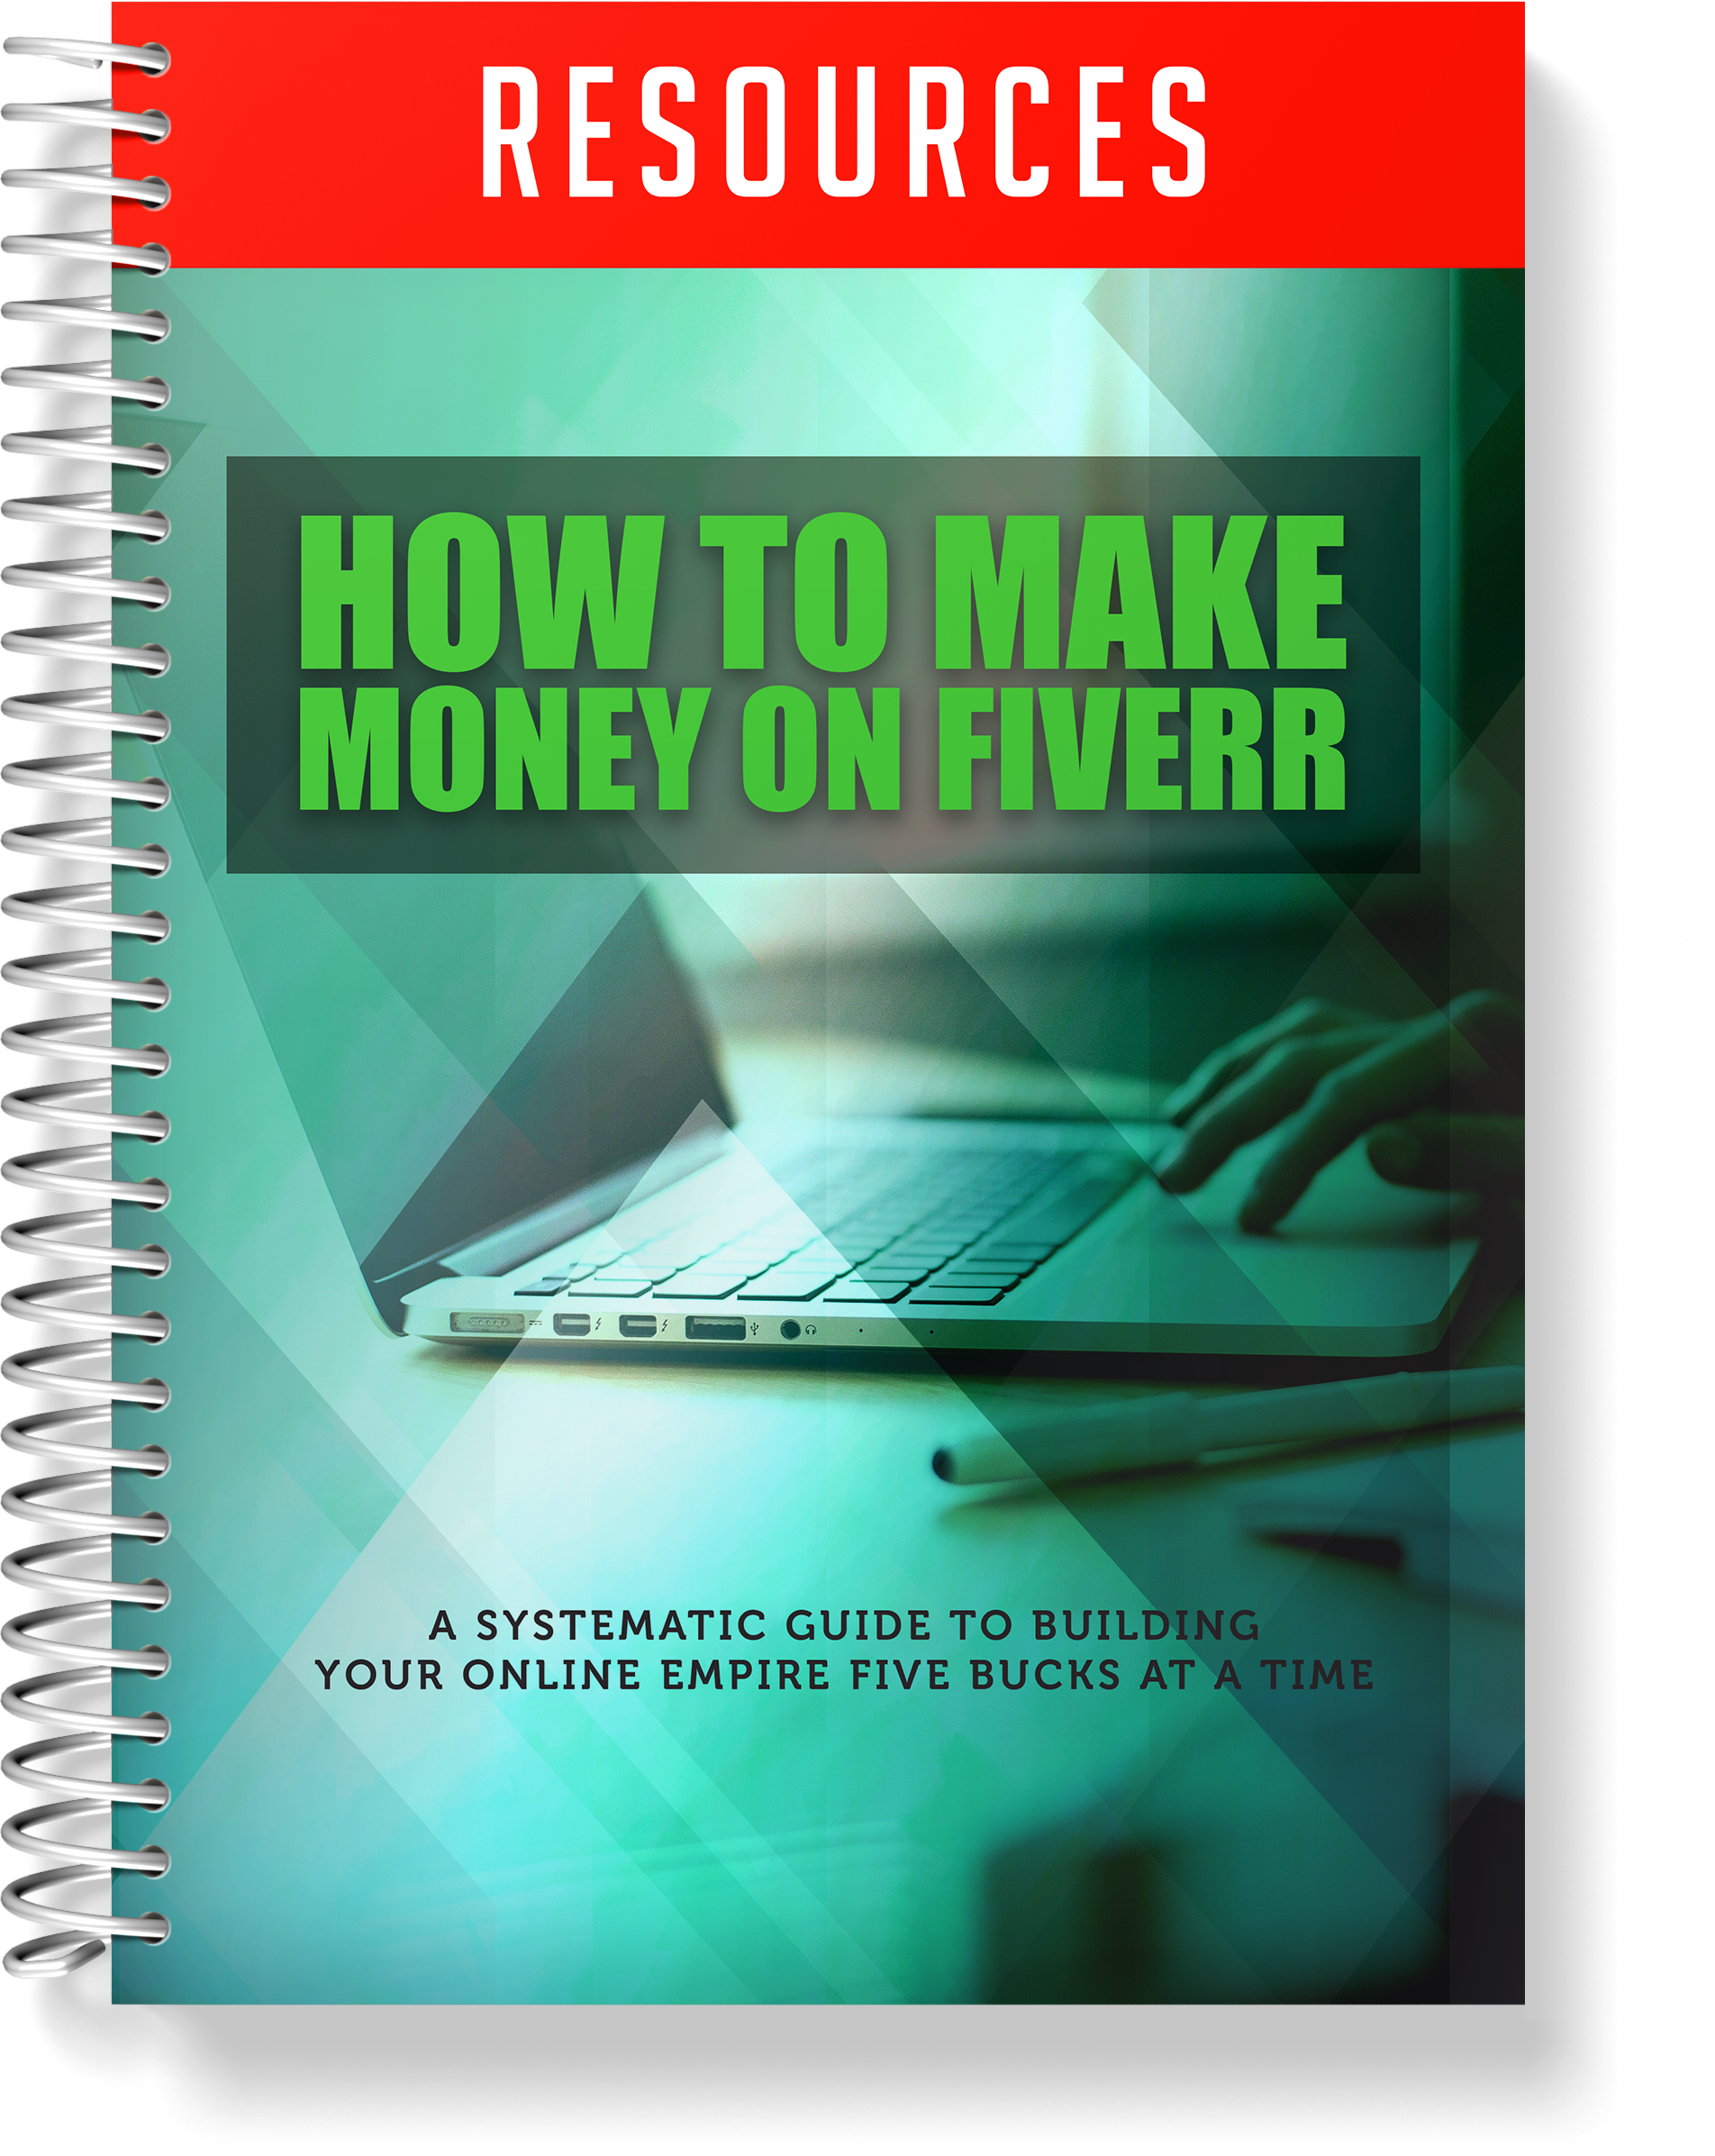 Resource Guide for Earning Money on Fiverr